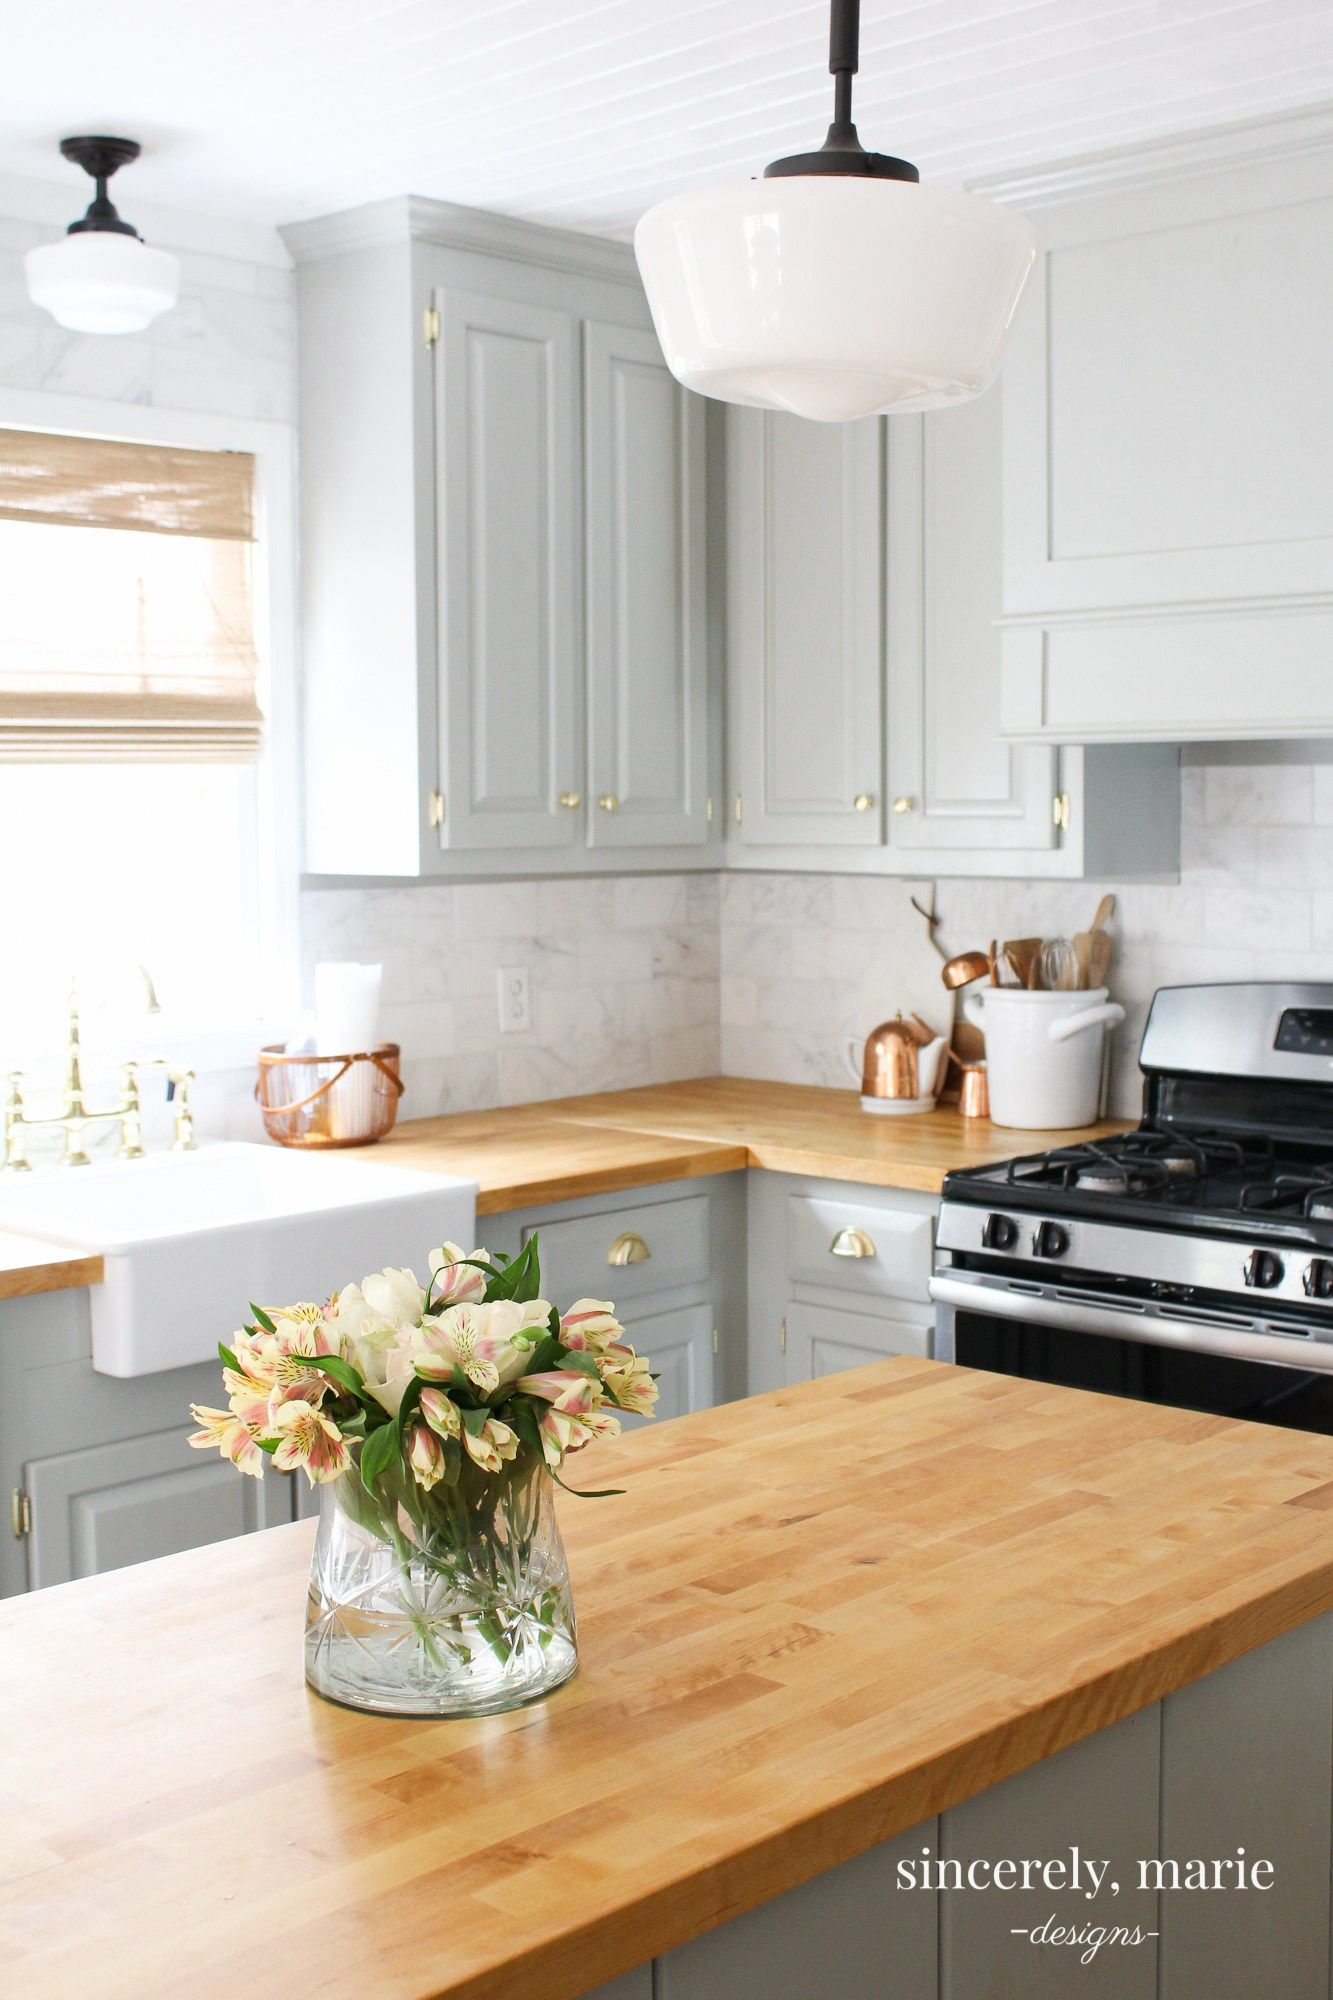 Our Butcher Block Counter Top Review - One Year Later #countertop